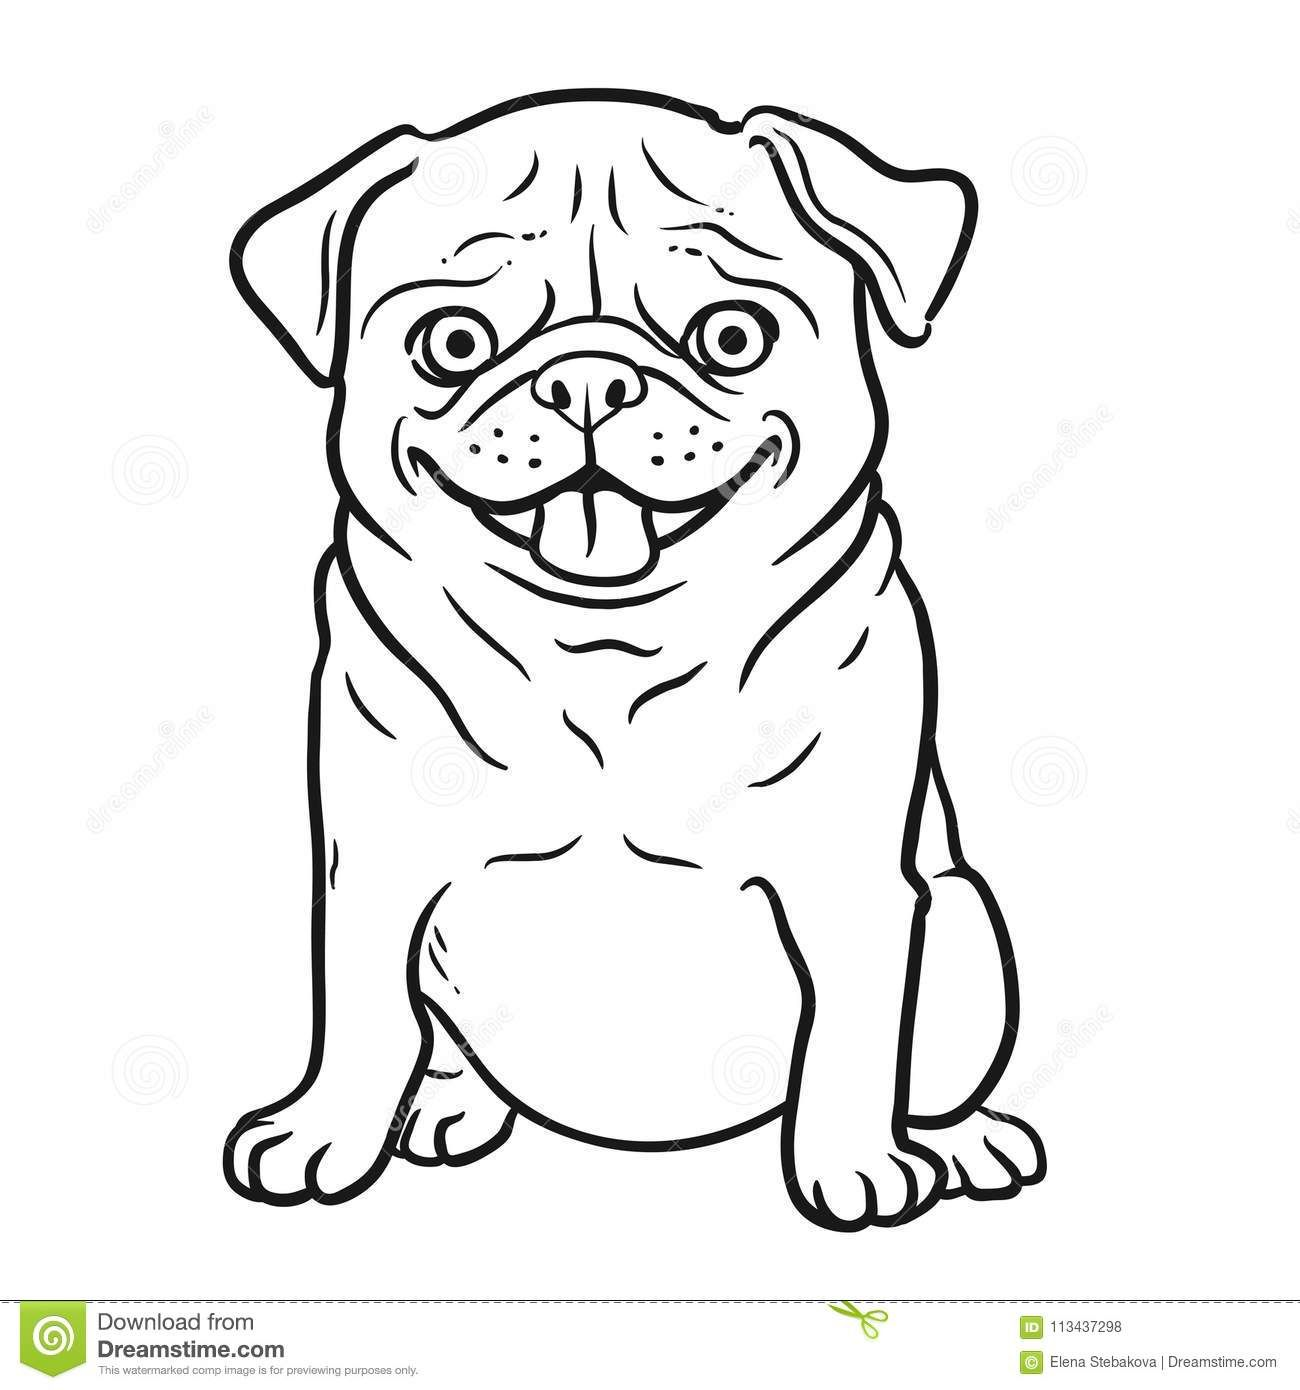 Pug Dog Black And White Hand Drawn Cartoon Portrait Funny Happy Stock Illustration Illustration Of Cute Character 11343729 In 2021 Dog Template Black Cartoon Pugs